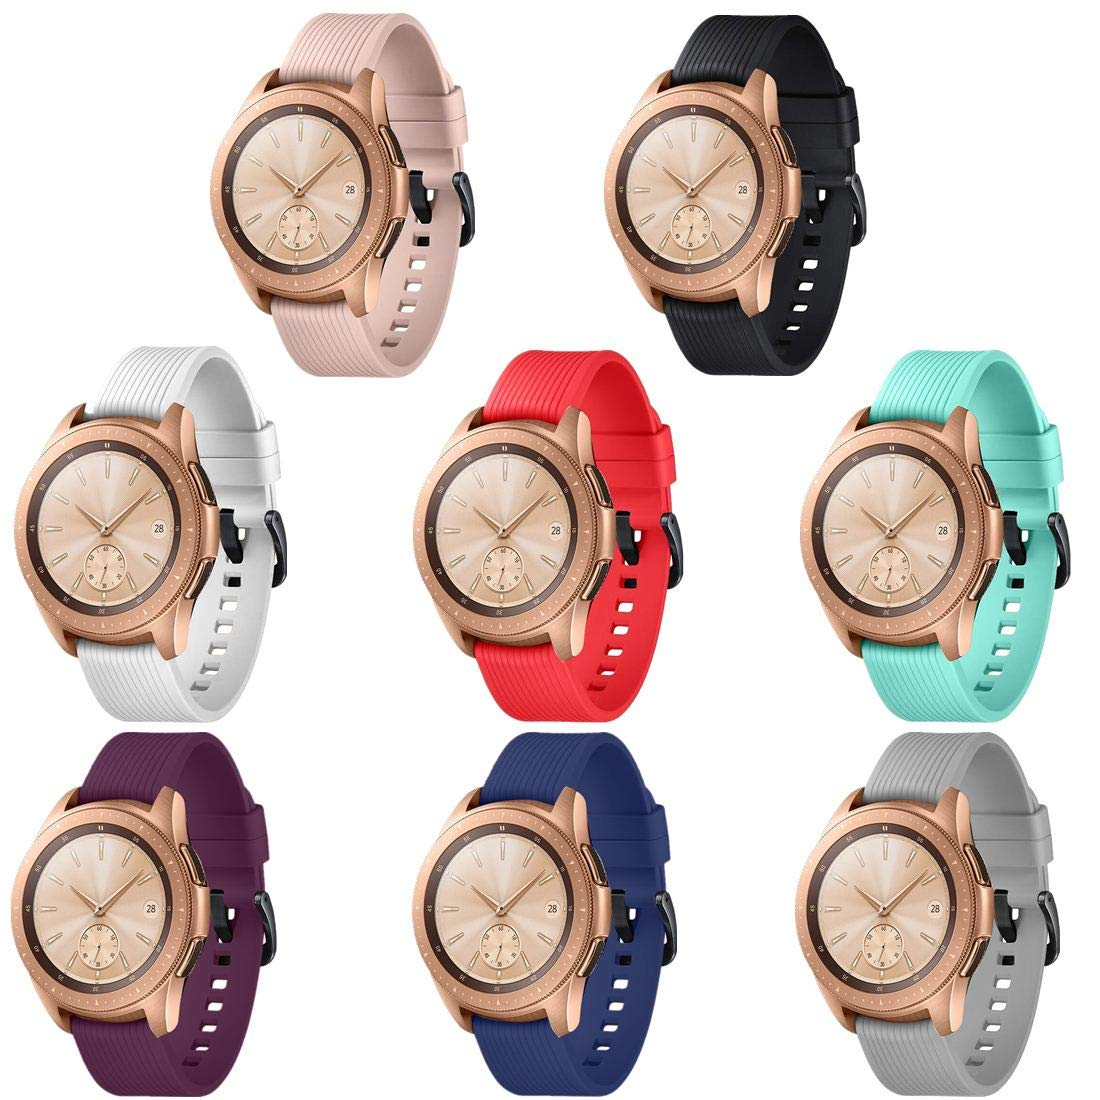 GinCoband 8PCS Sport Bands Replacement for Samsung Galaxy Watch 42mm,46mm,No Tracker (8-Colors for Galaxy Watch(42MM), Buckle Design)